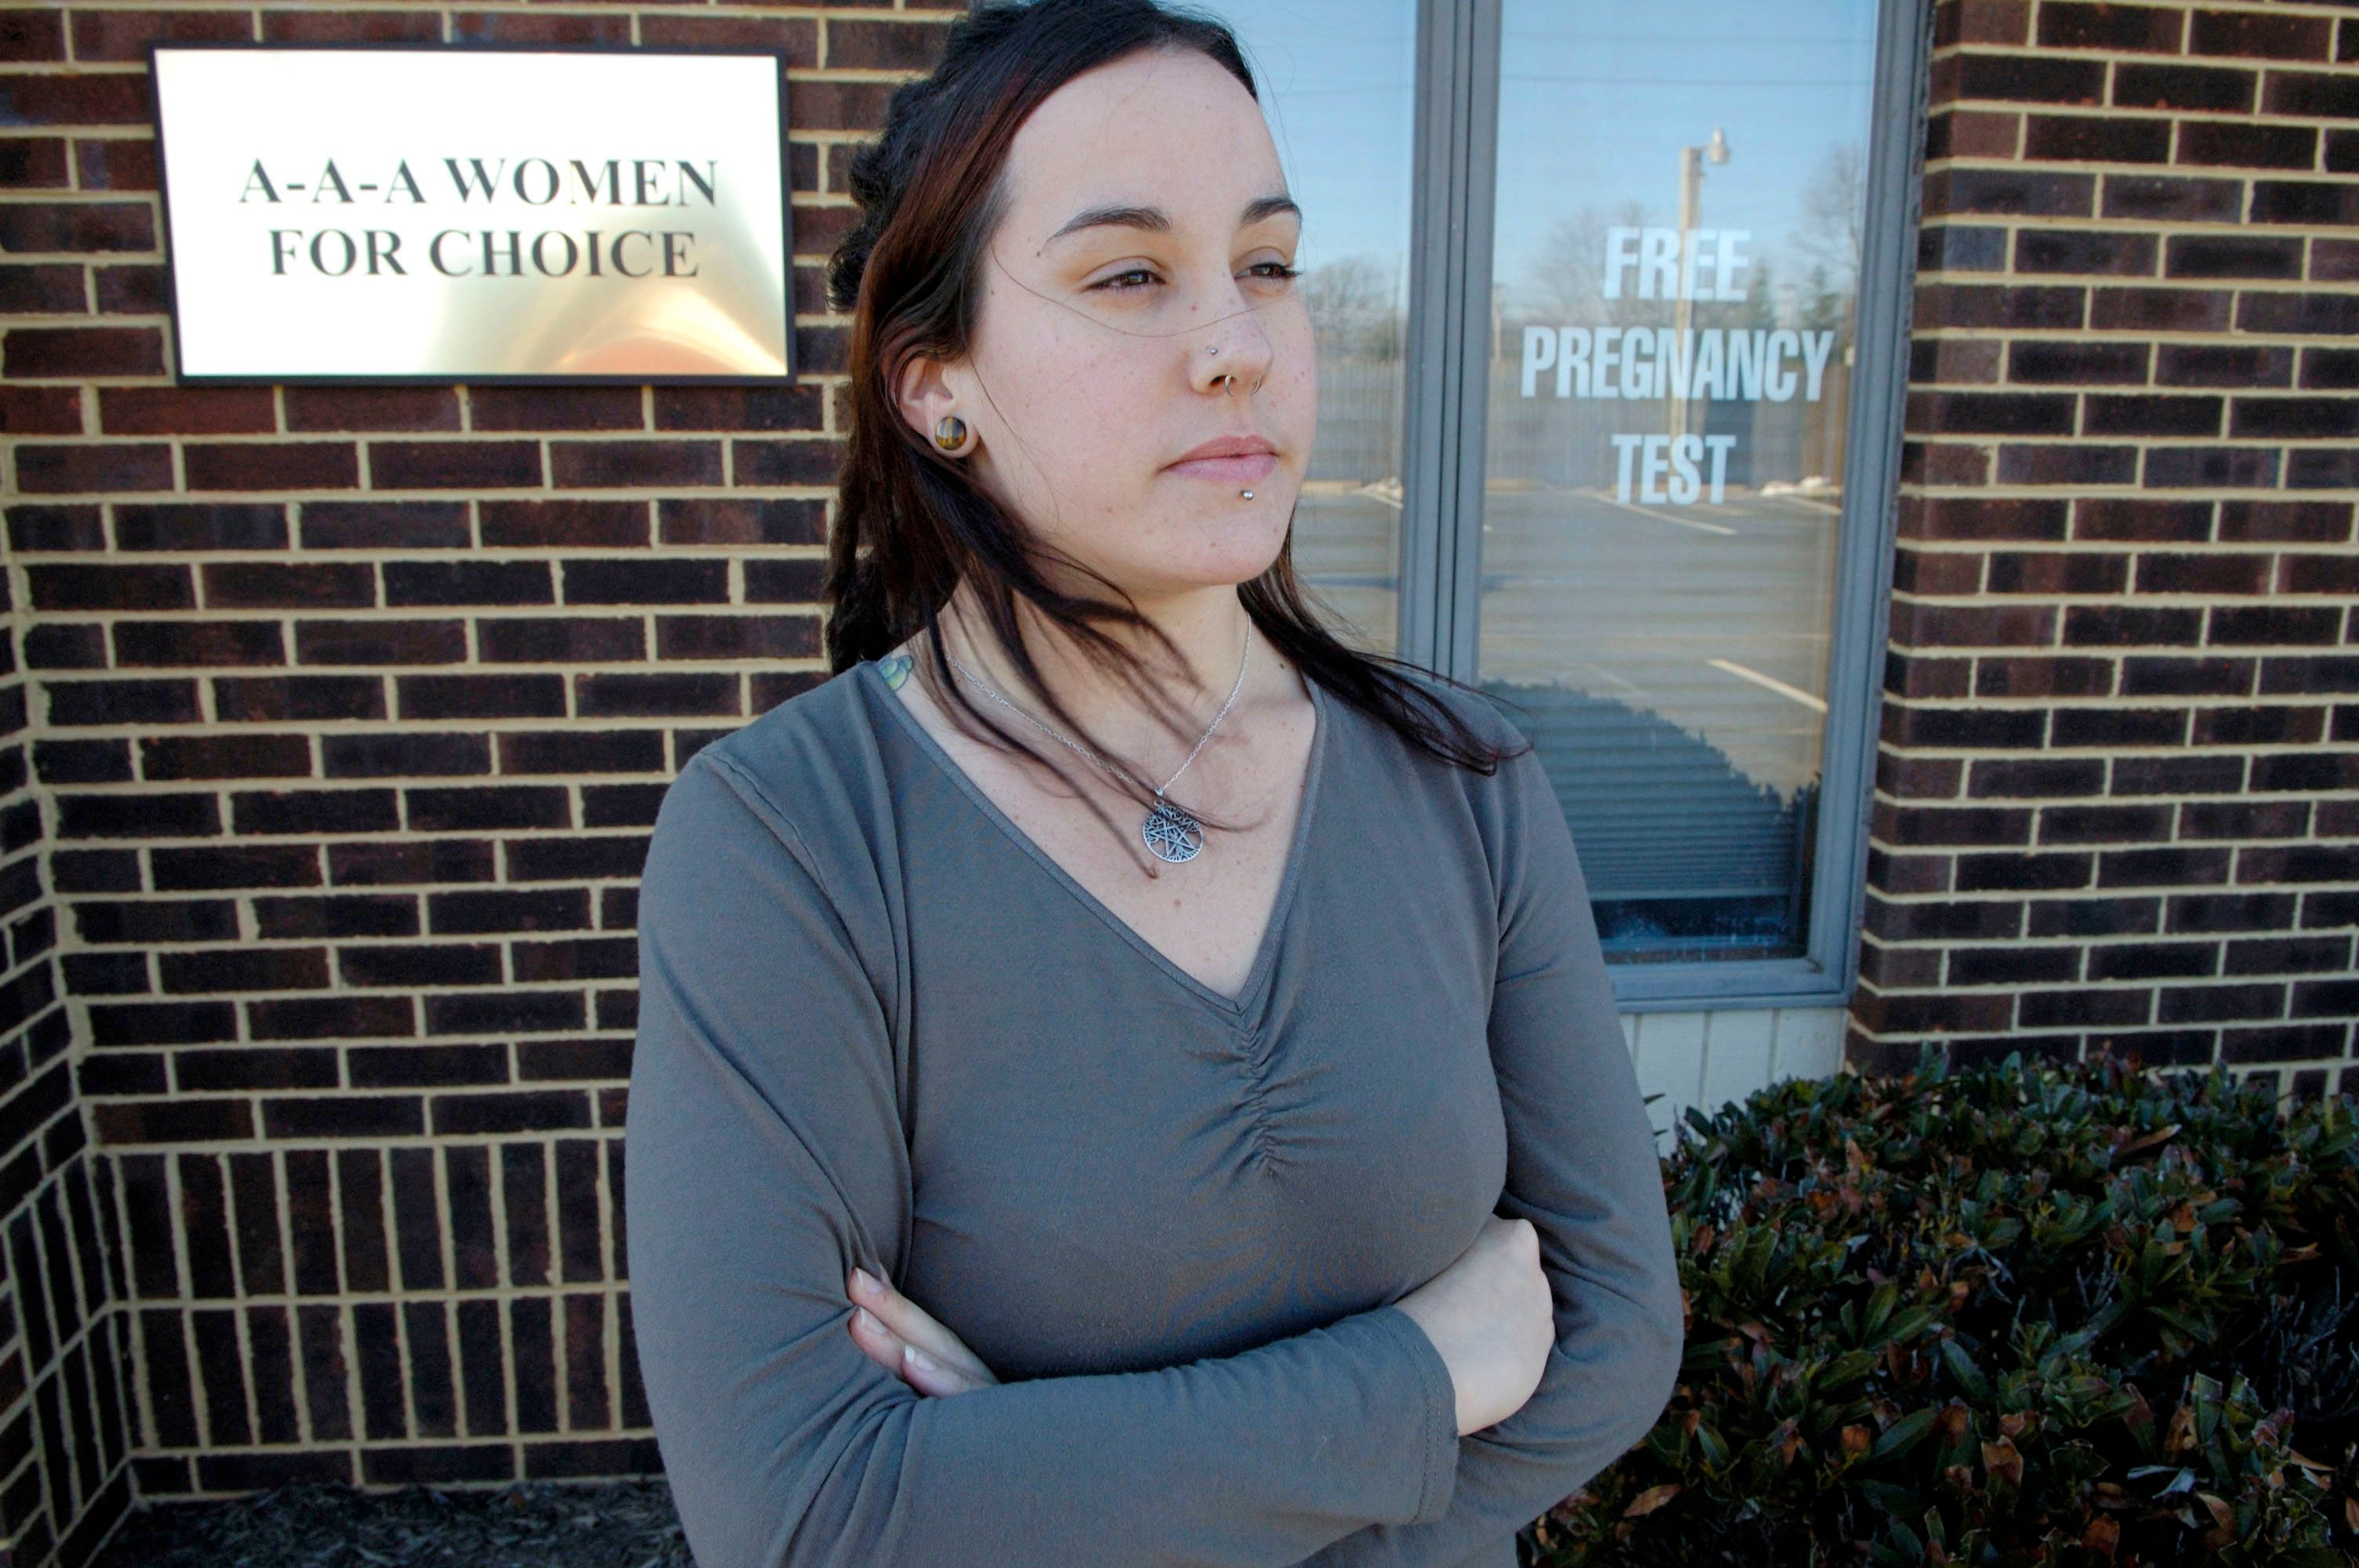 Allyson Kirk, 24, stands outside the A-A-A Women For Choice clinic, a crisis pregnancy center, March 2, 2007, in Manassas, Virginia. Kirk, who opted for an abortion at another clinic, is among many women who feel misled by the pregnancy centers.  (Photo by Stephanie Kuykendal/Chicago Tribune/MCT via Getty Images)